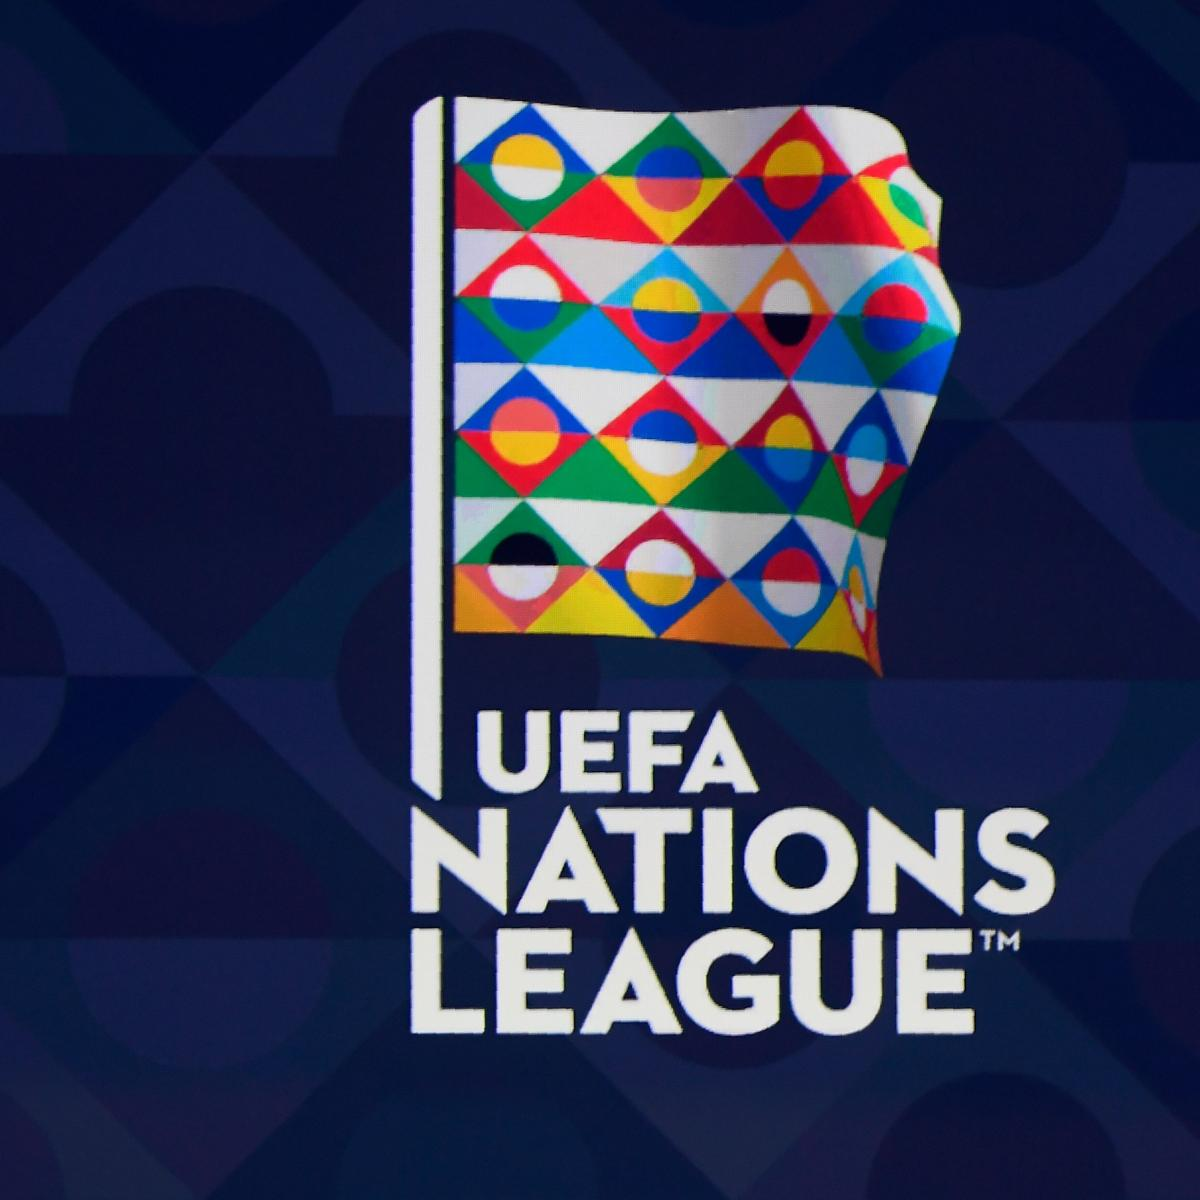 UEFA Nations League 2018-19 Fixtures, Bracket, Live Stream, Odds and Prize Money